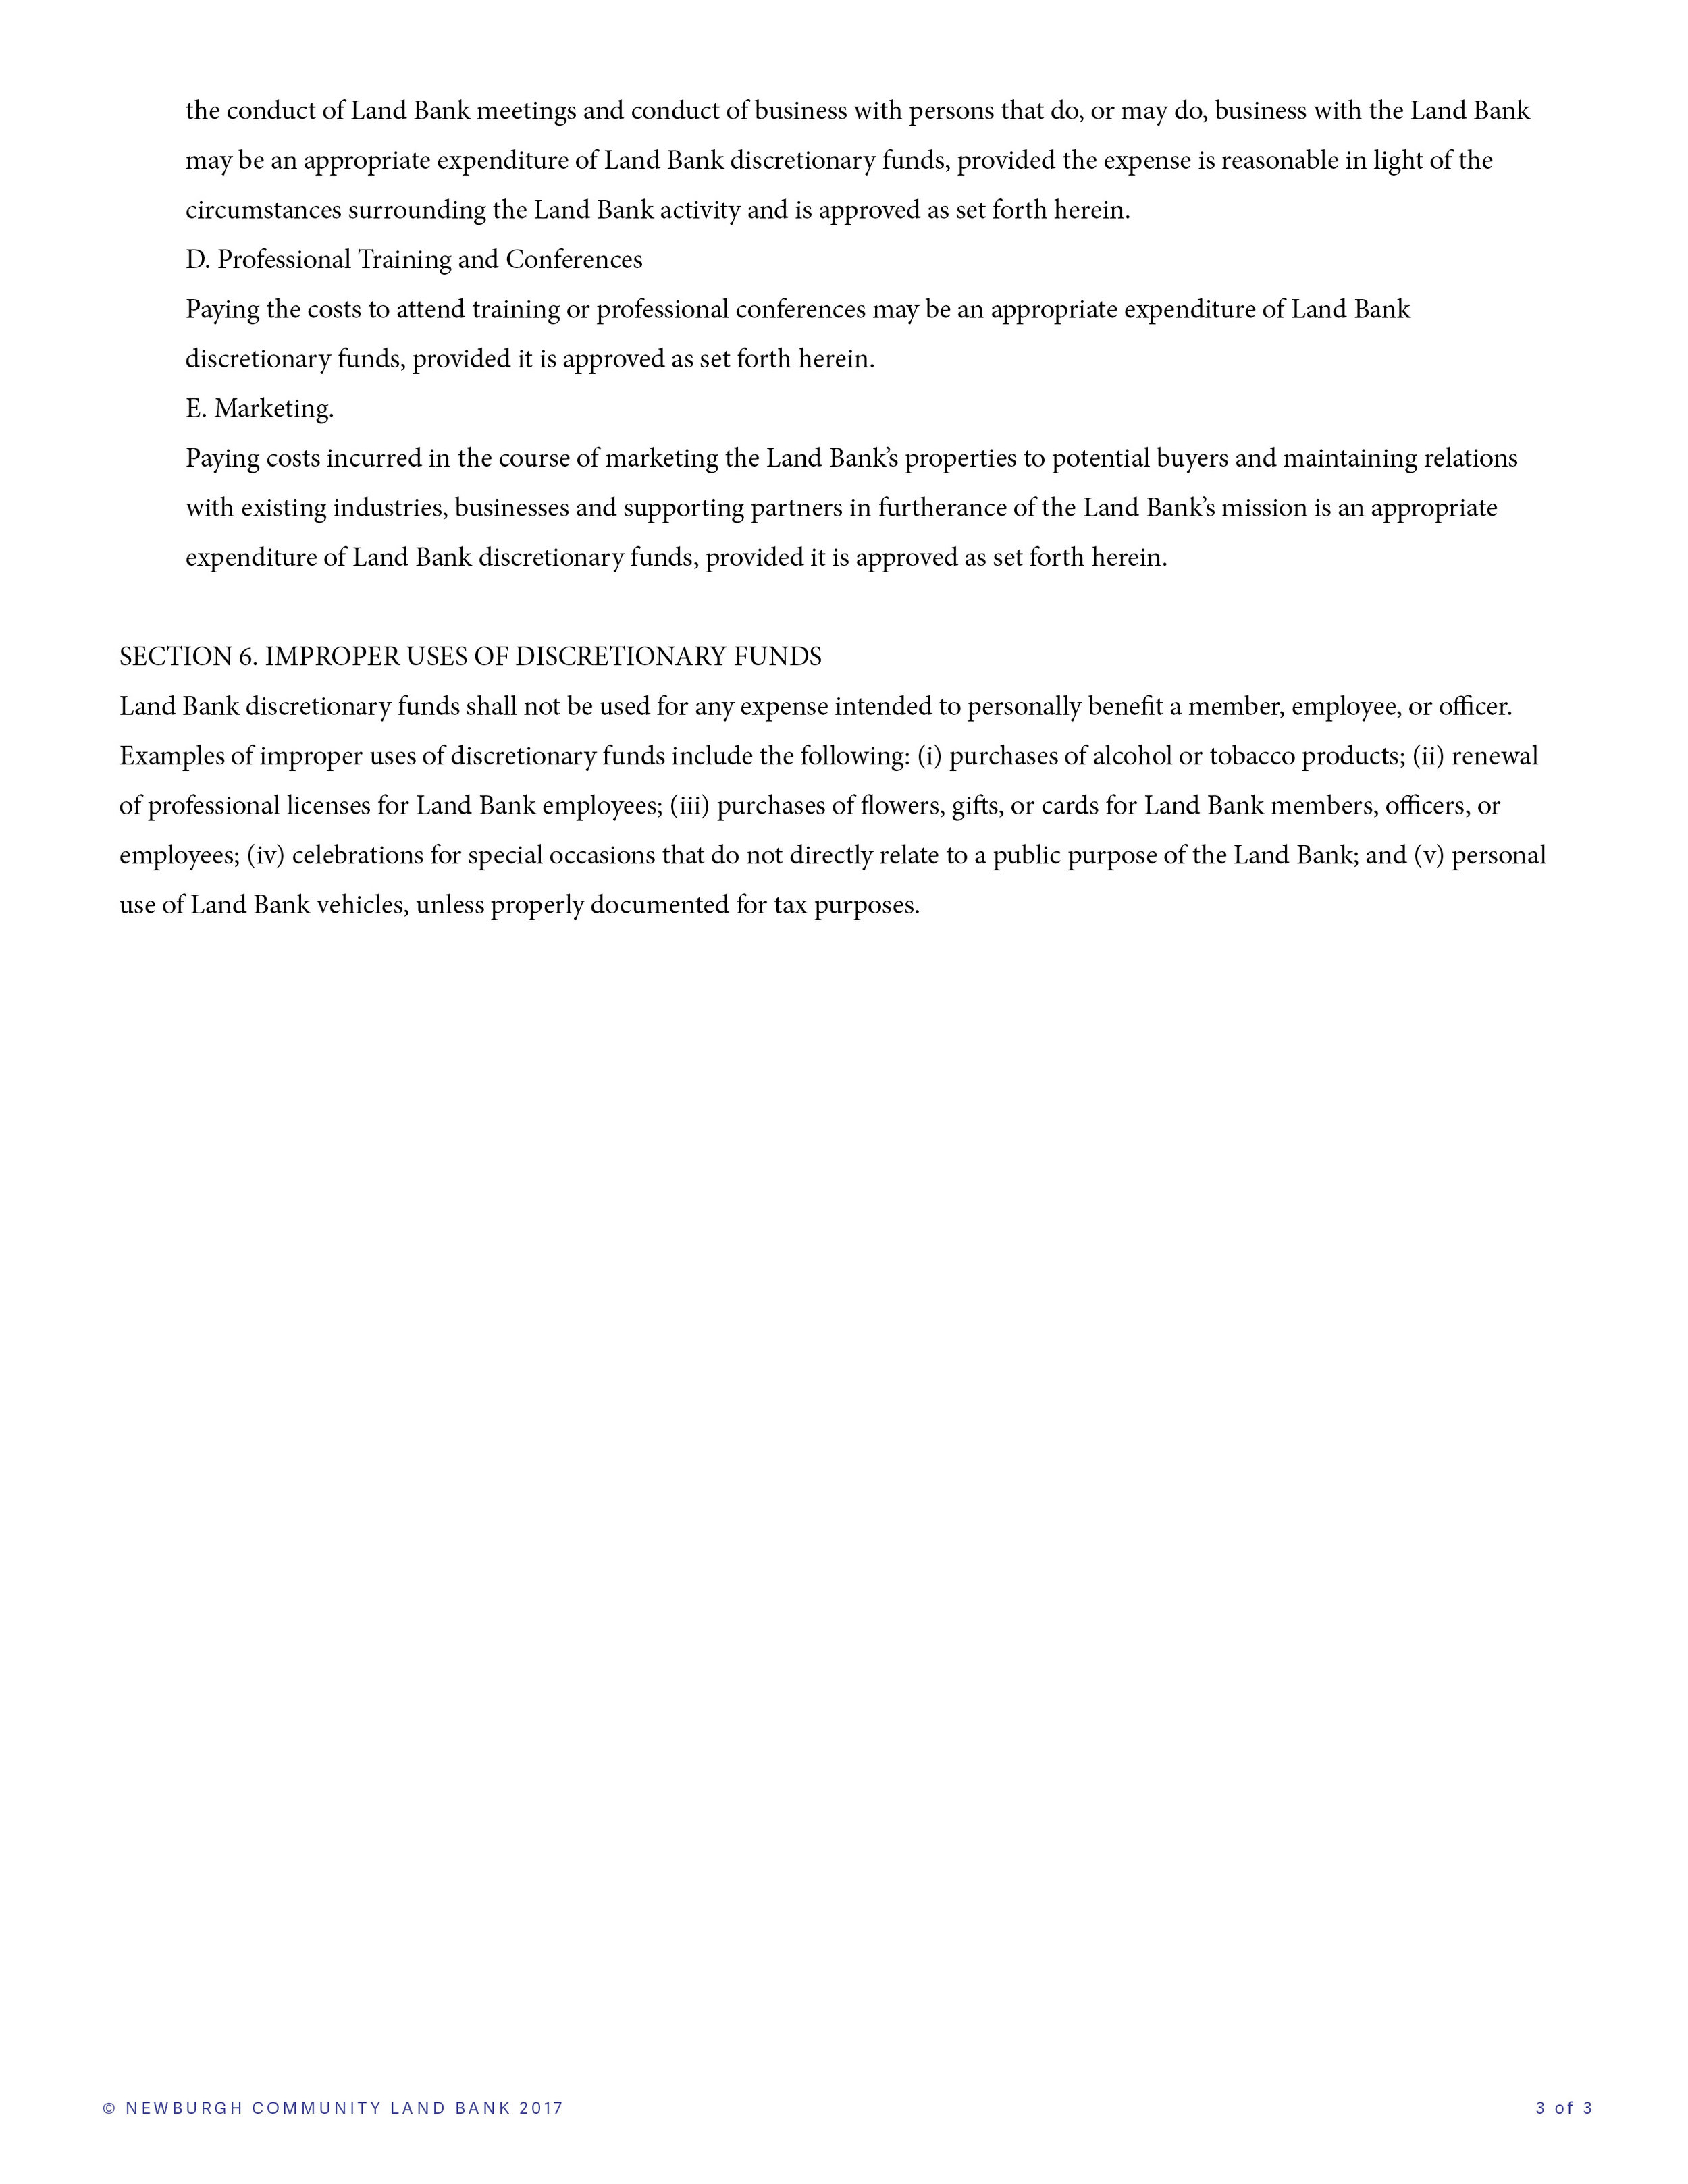 NCLB Travel & Discretionary Funds Policy3.jpg